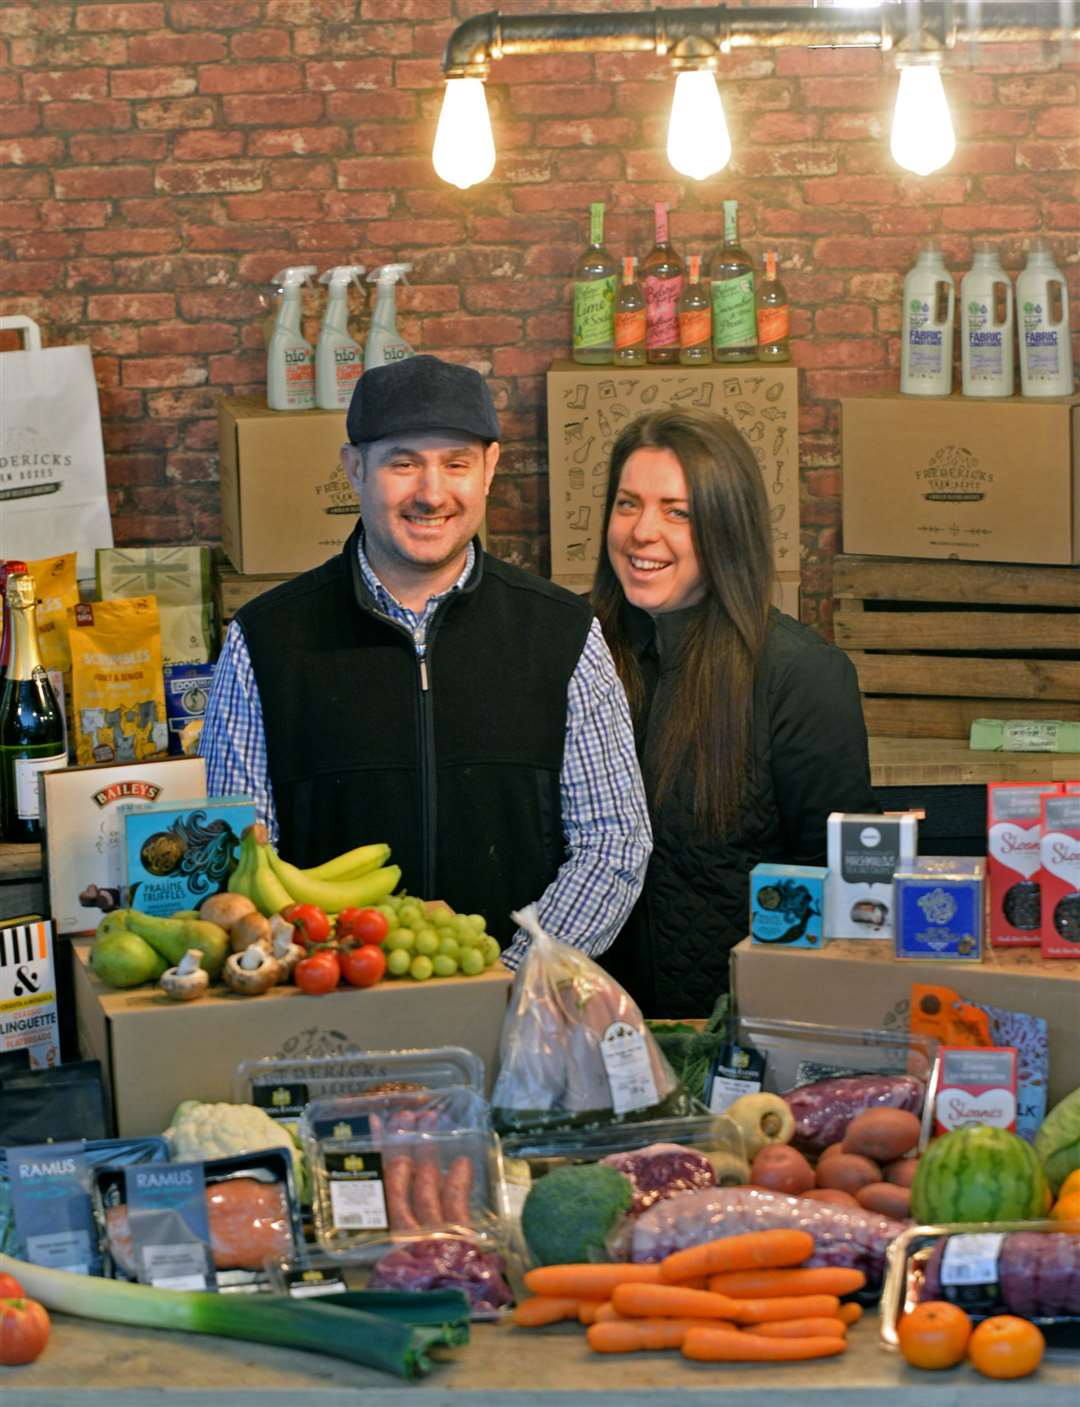 Frederick and Maria Hopkinson have launched Frederick's Farm Boxes from their base at the Peek Business Centre. Picture: Vikki Lince